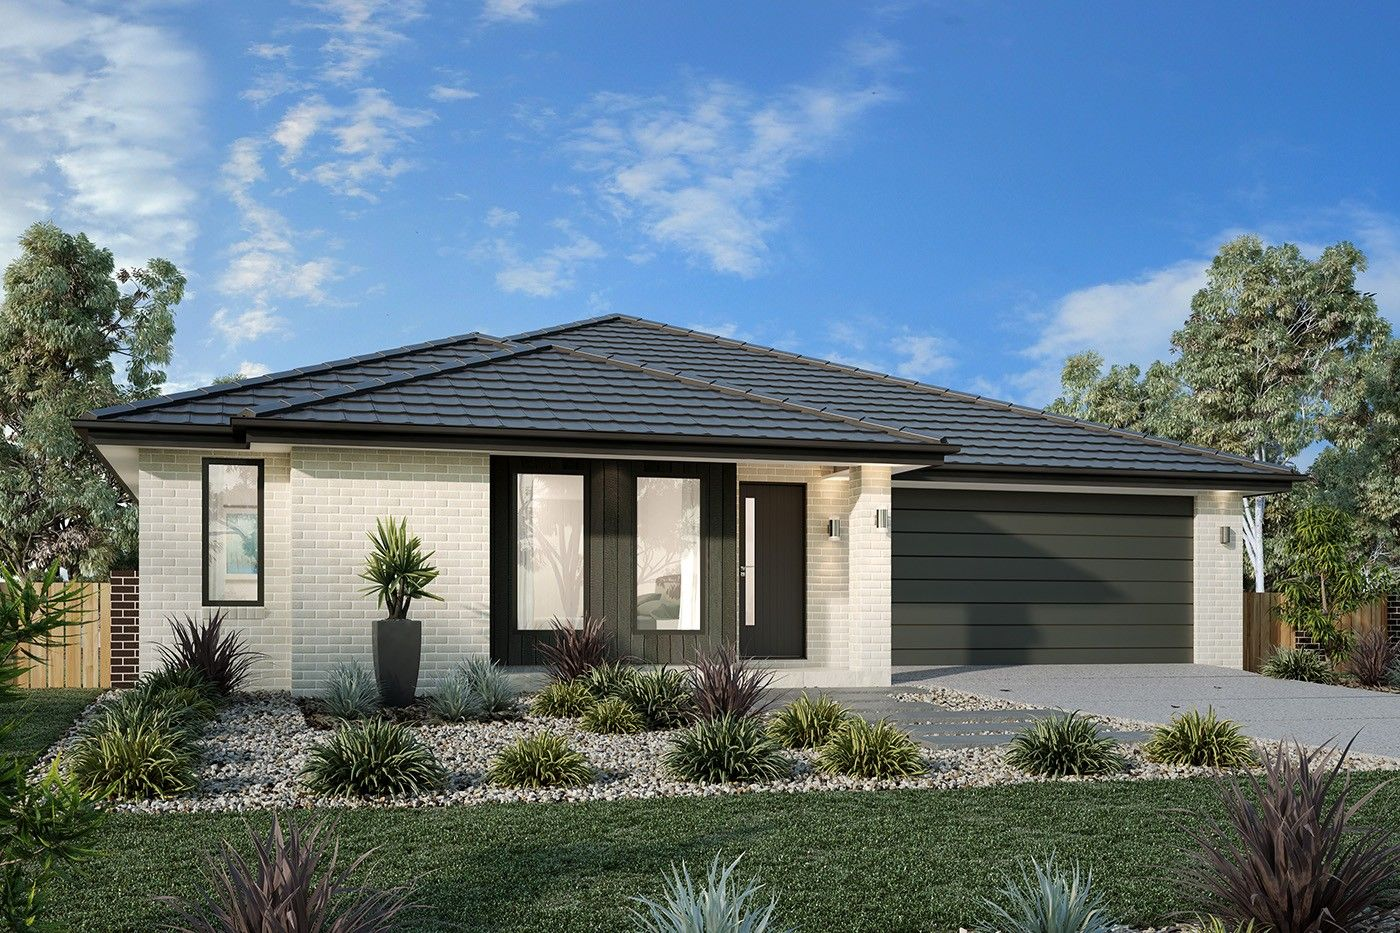 Lot 205 Gordon Street, The Outlook, Calala NSW 2340, Image 0